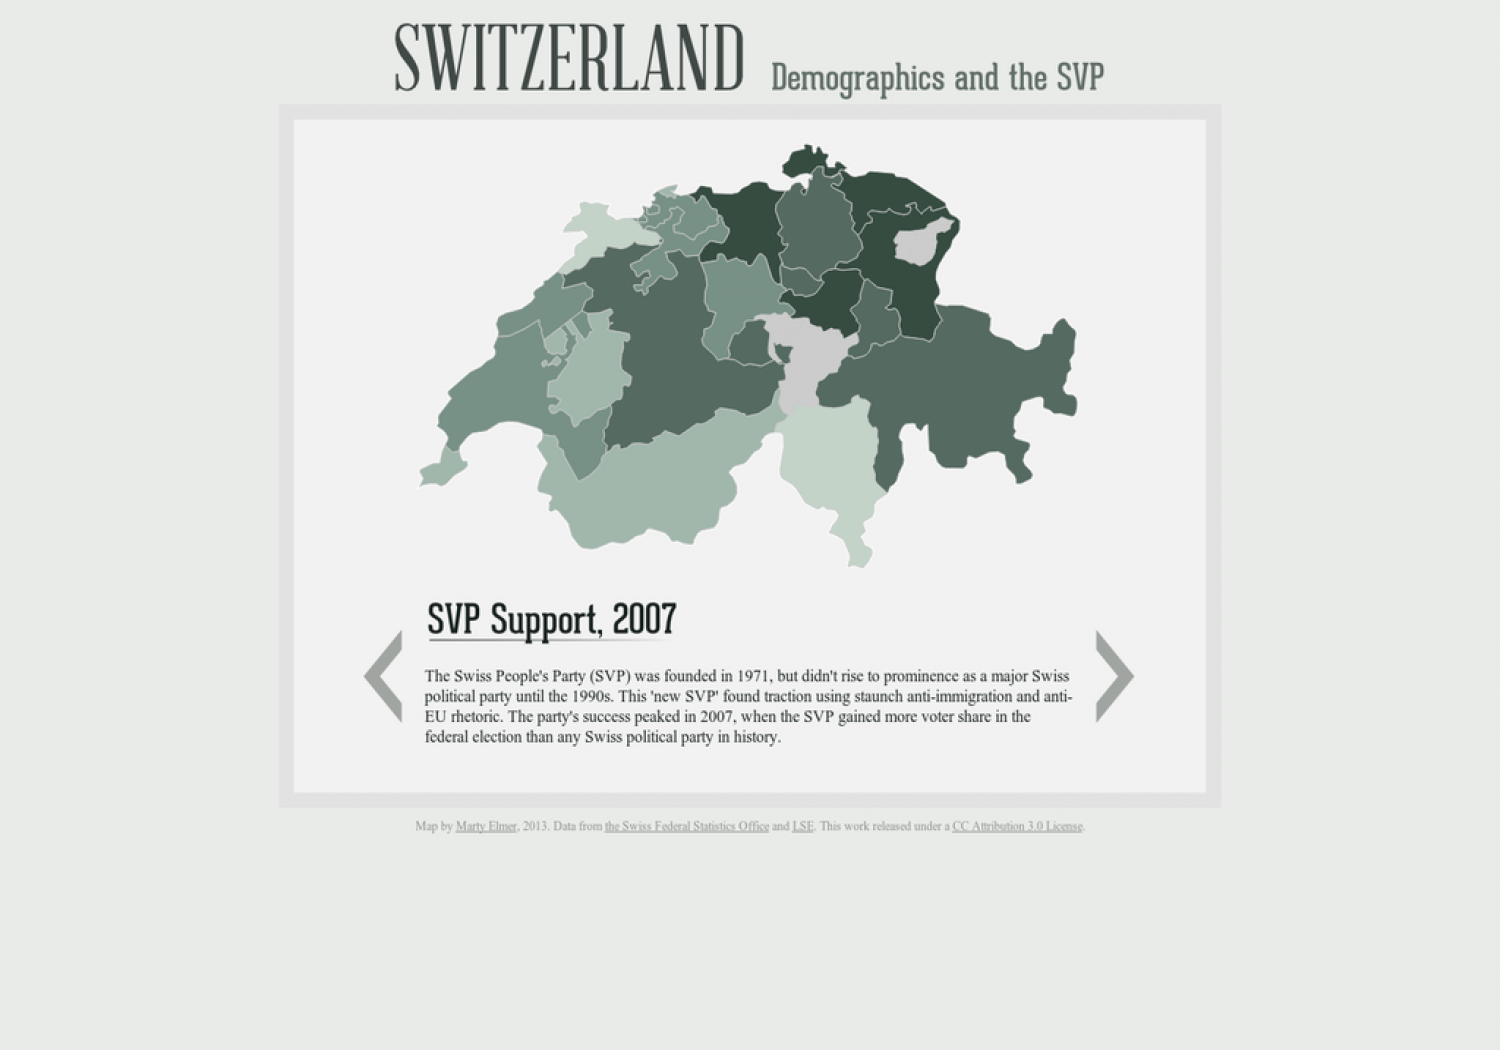 Switzerland: Demographics and the SVP Infographic